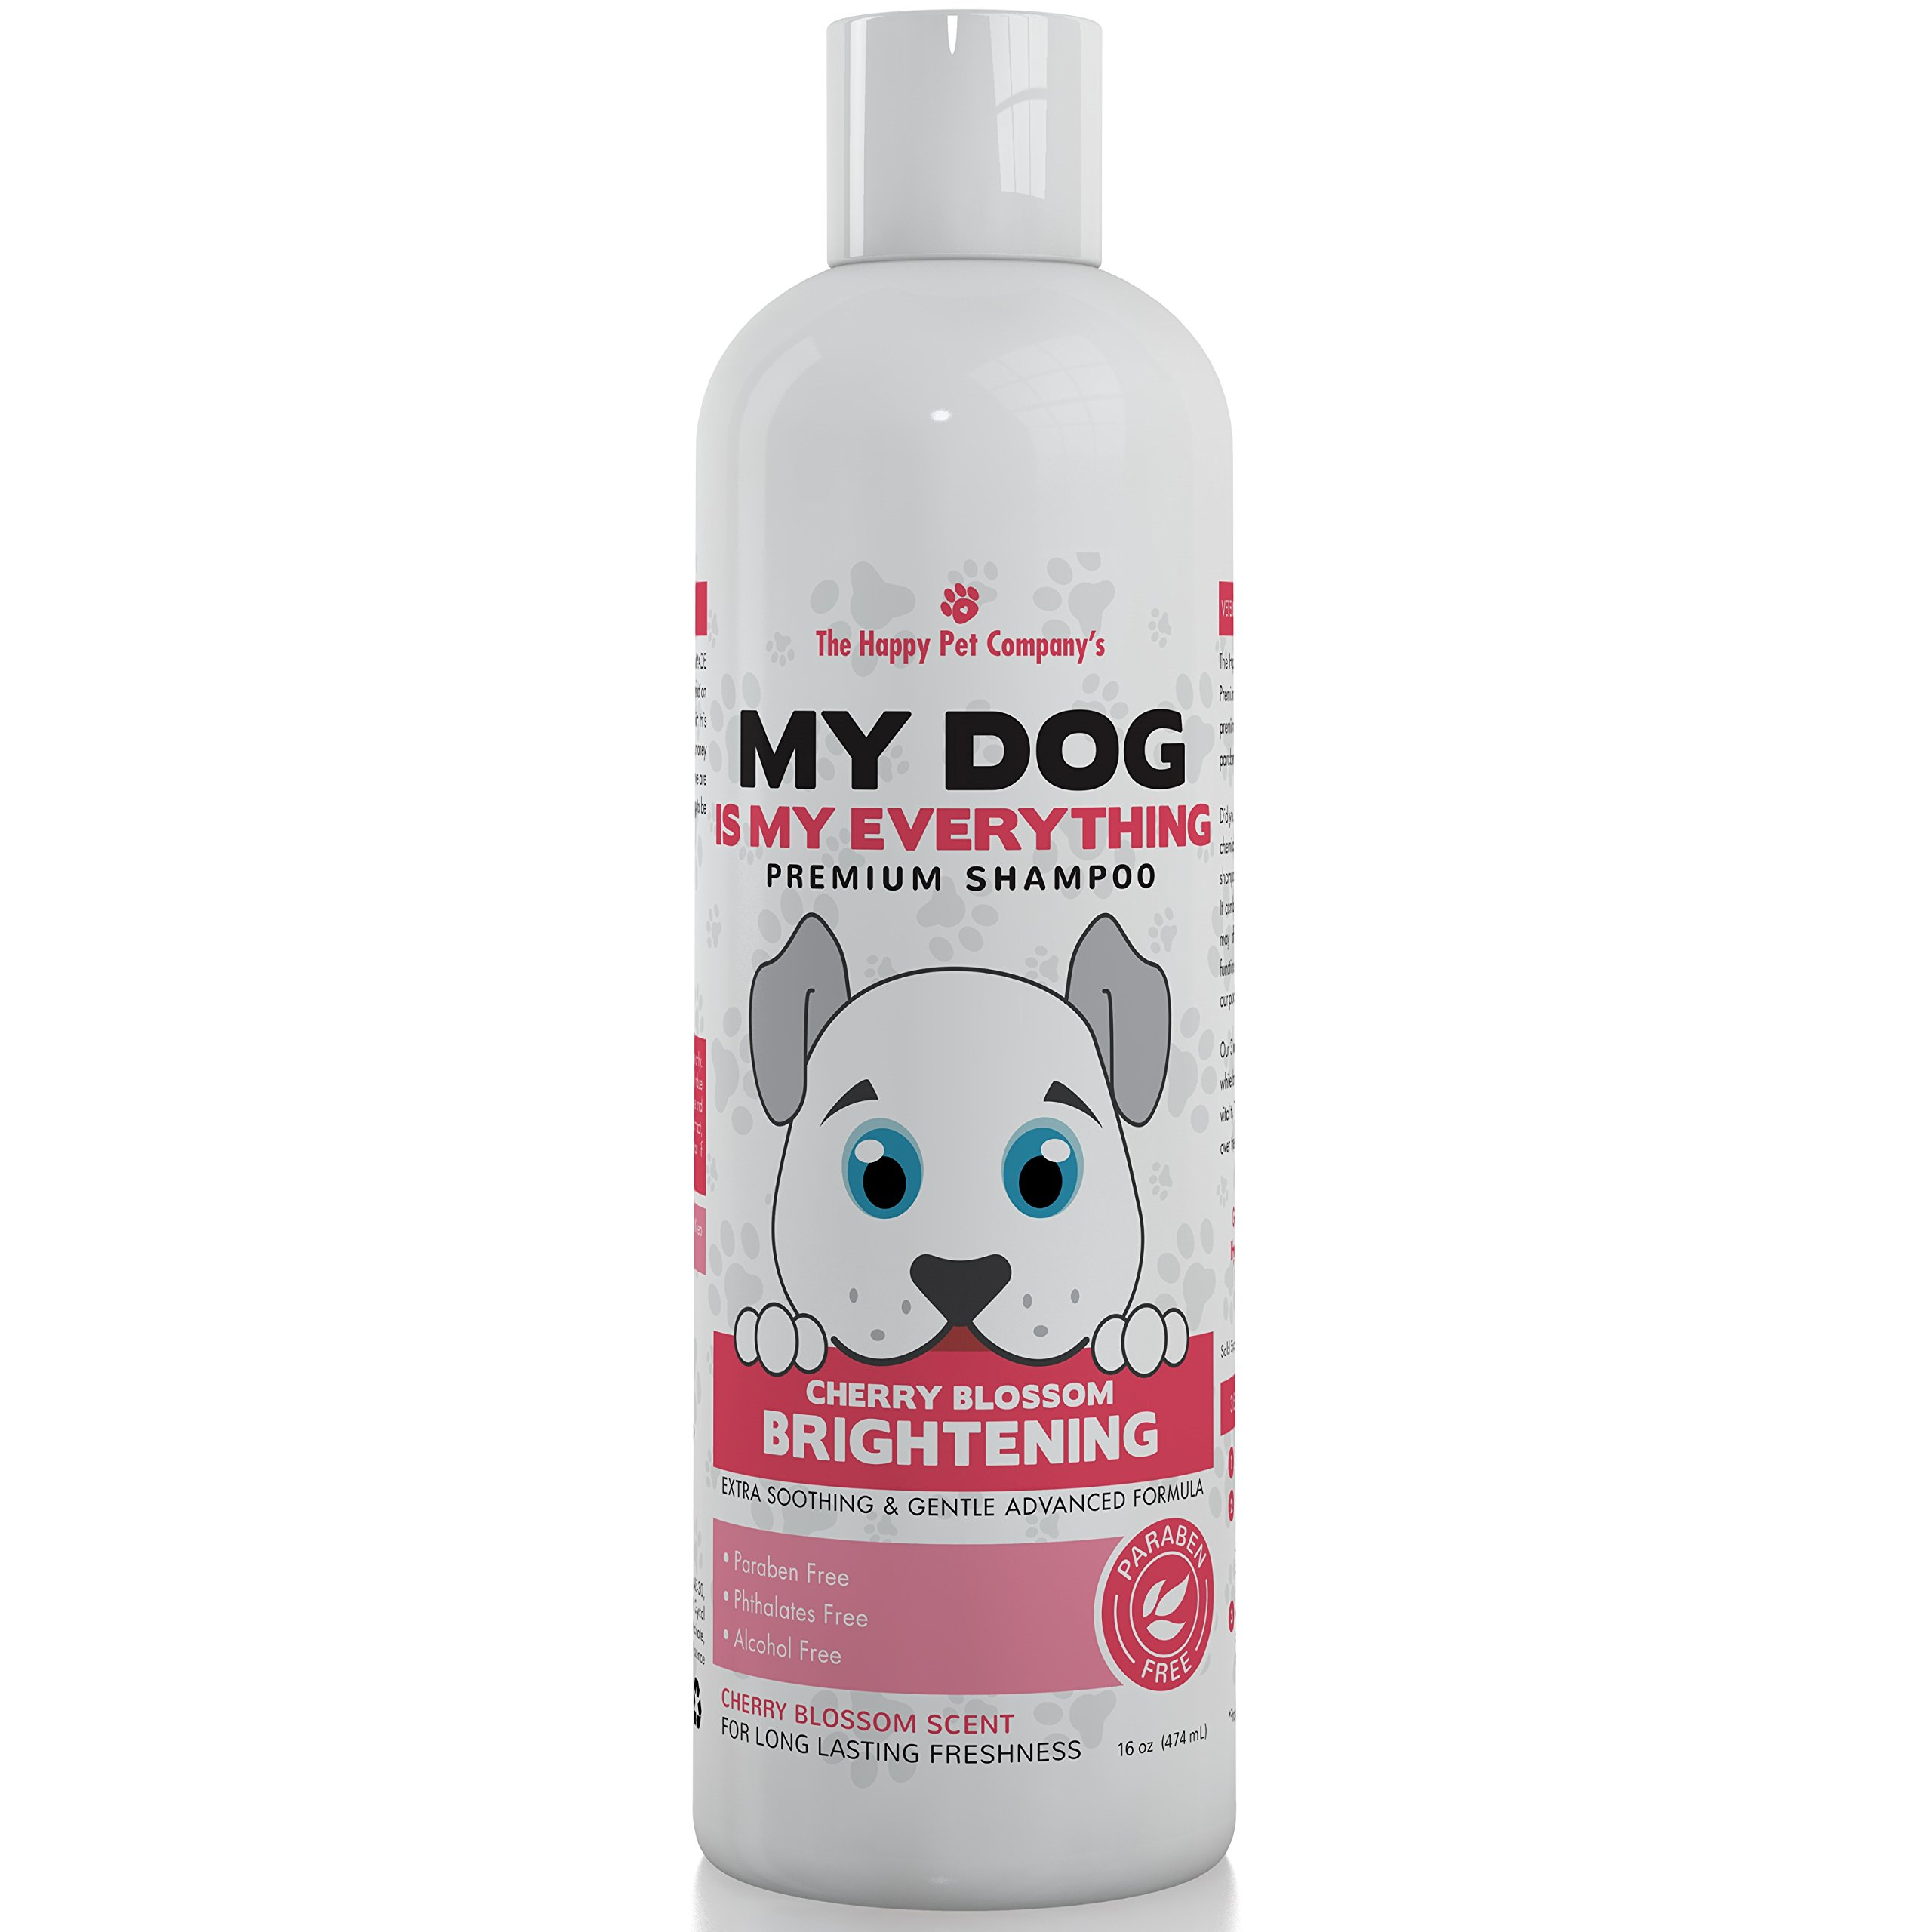 The Happy Pet Company 100% Hypoallergenic Cherry Blossom White Brightening Premium Shampoo - Extra Soothing & Gentle Advanced Formula